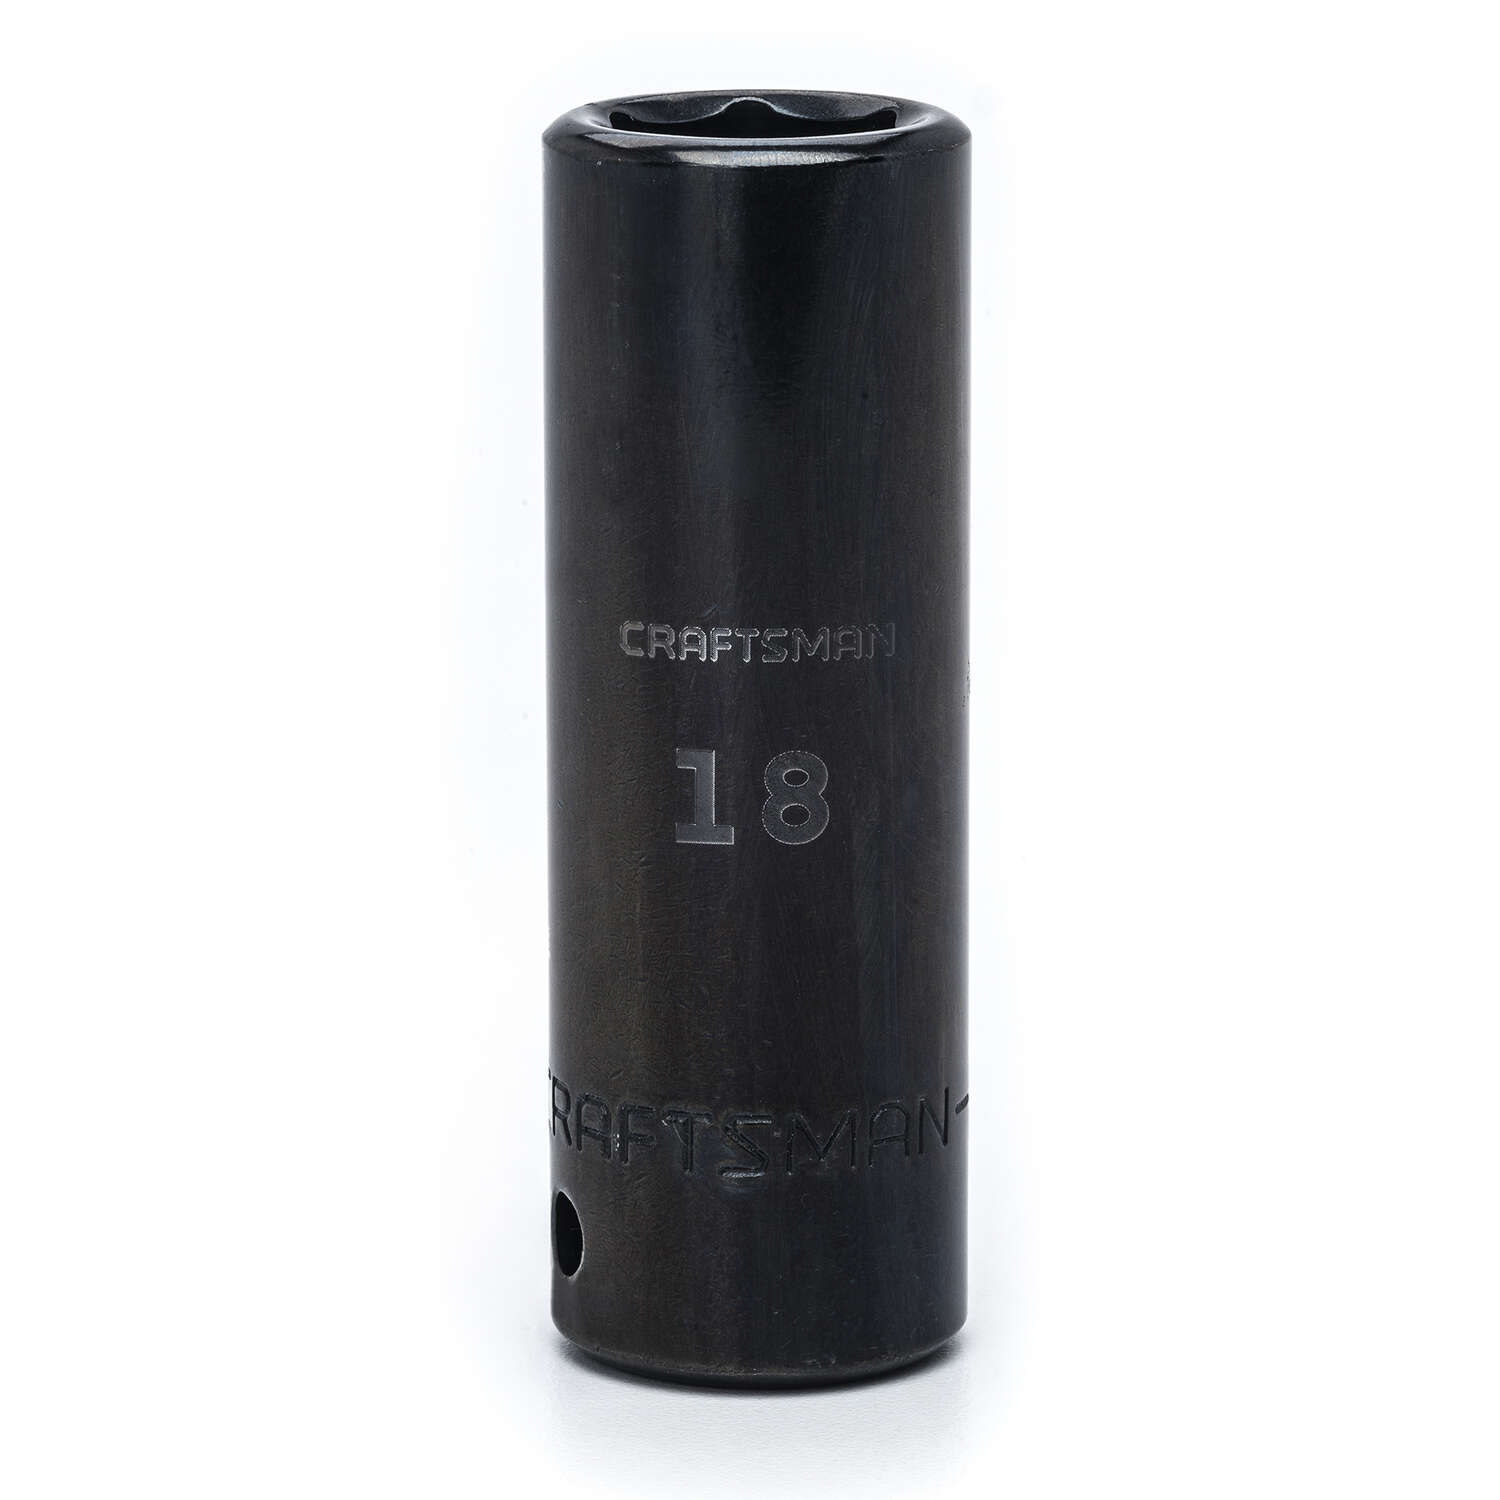 Craftsman  18 mm  x 1/2 in. drive  Metric  6 Point Deep  Deep Impact Socket  1 pc.